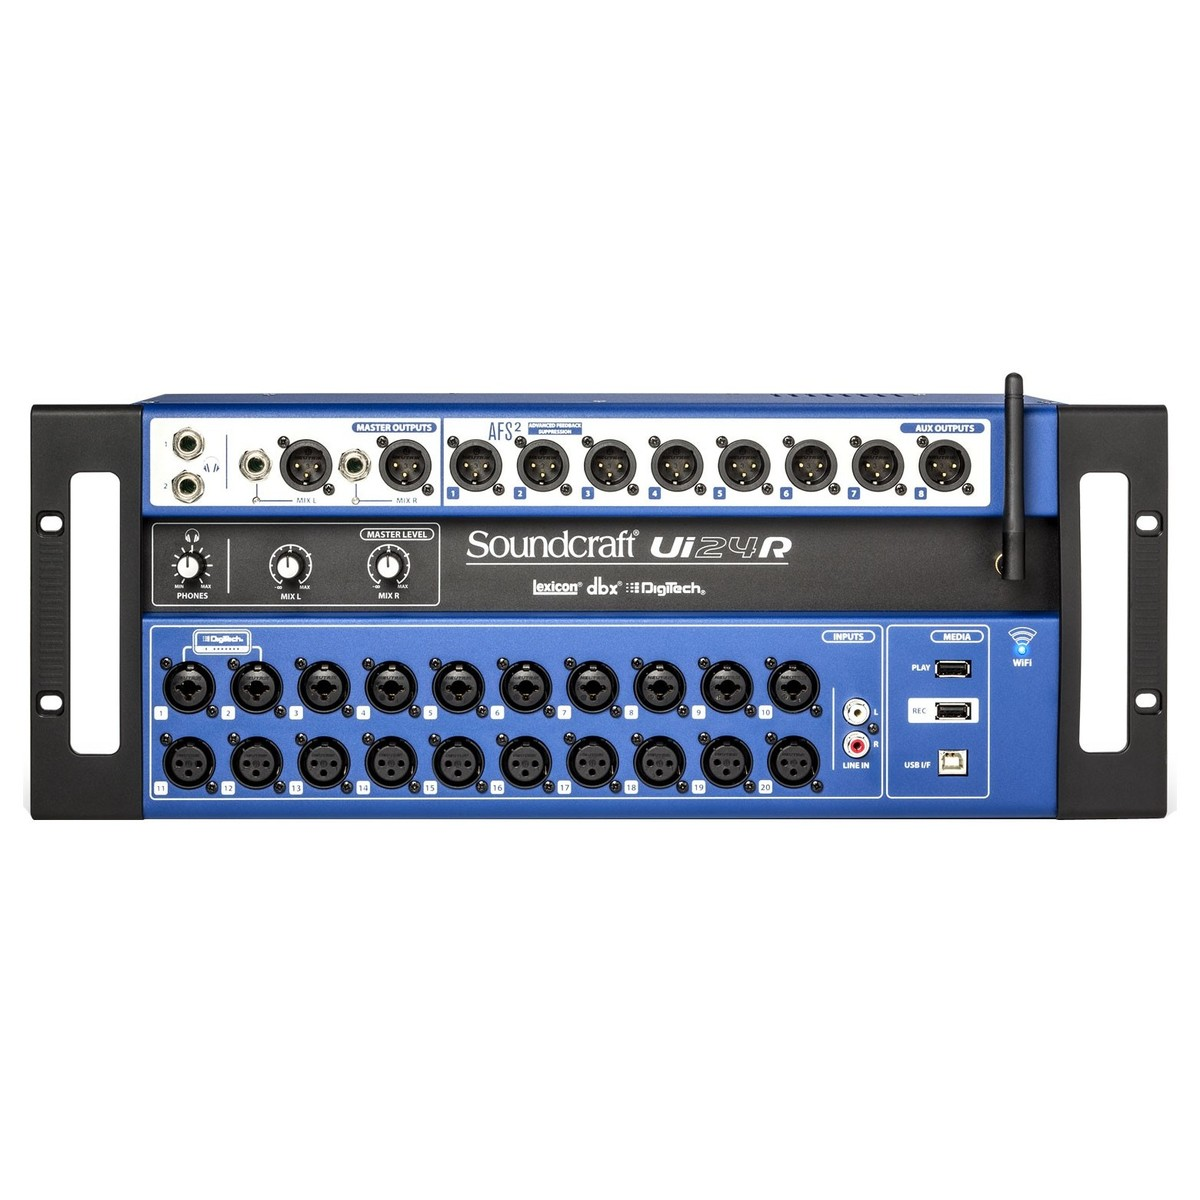 Soundcraft Ui24r Digital Rack Mixer At Gear4music Dress Wires A V Installation Patch Panel To Switch On Recording System Front Loading Zoom